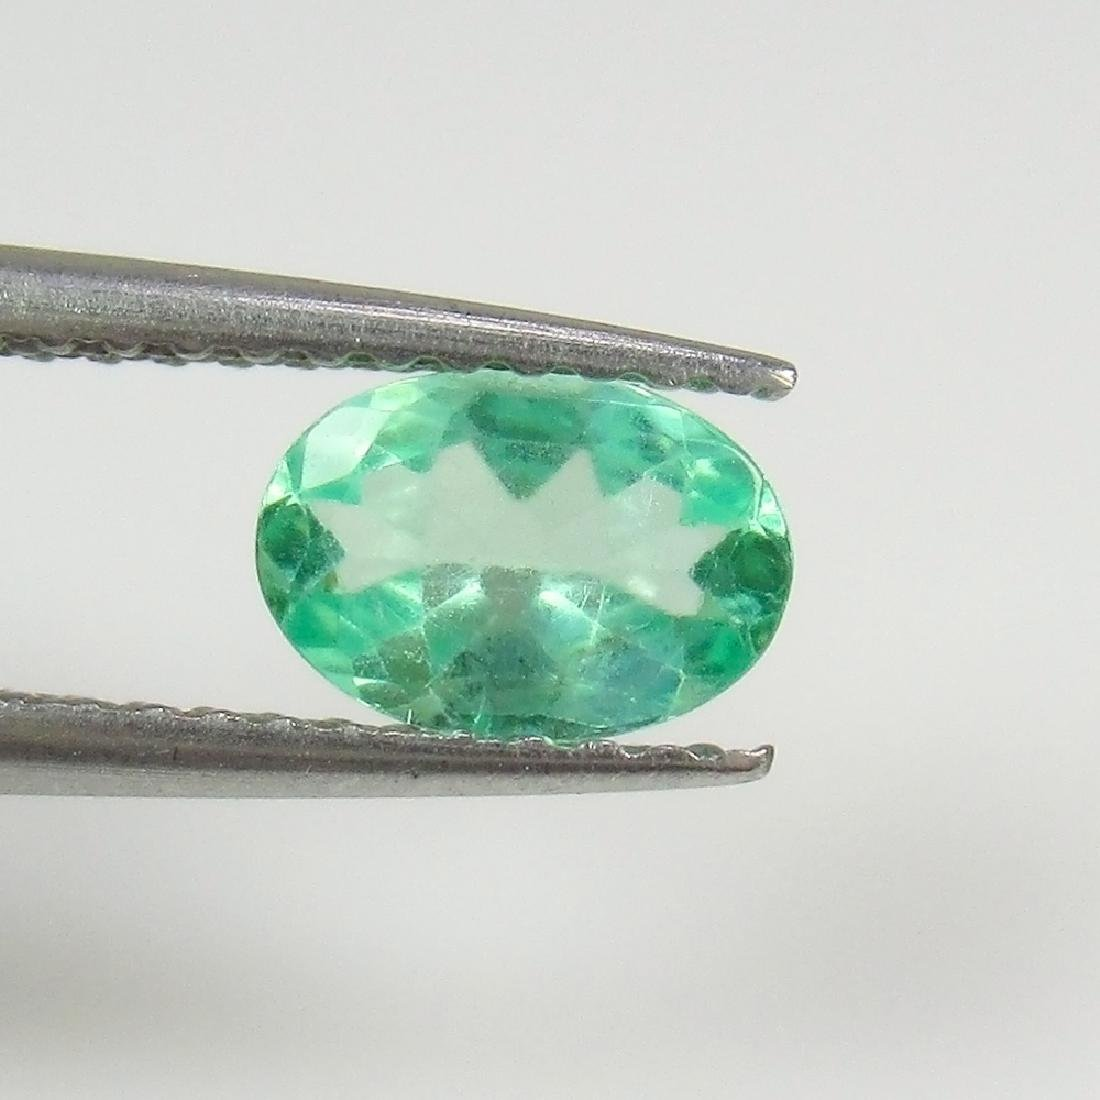 0.65 Ctw Natural Green Apatite Oval Cut